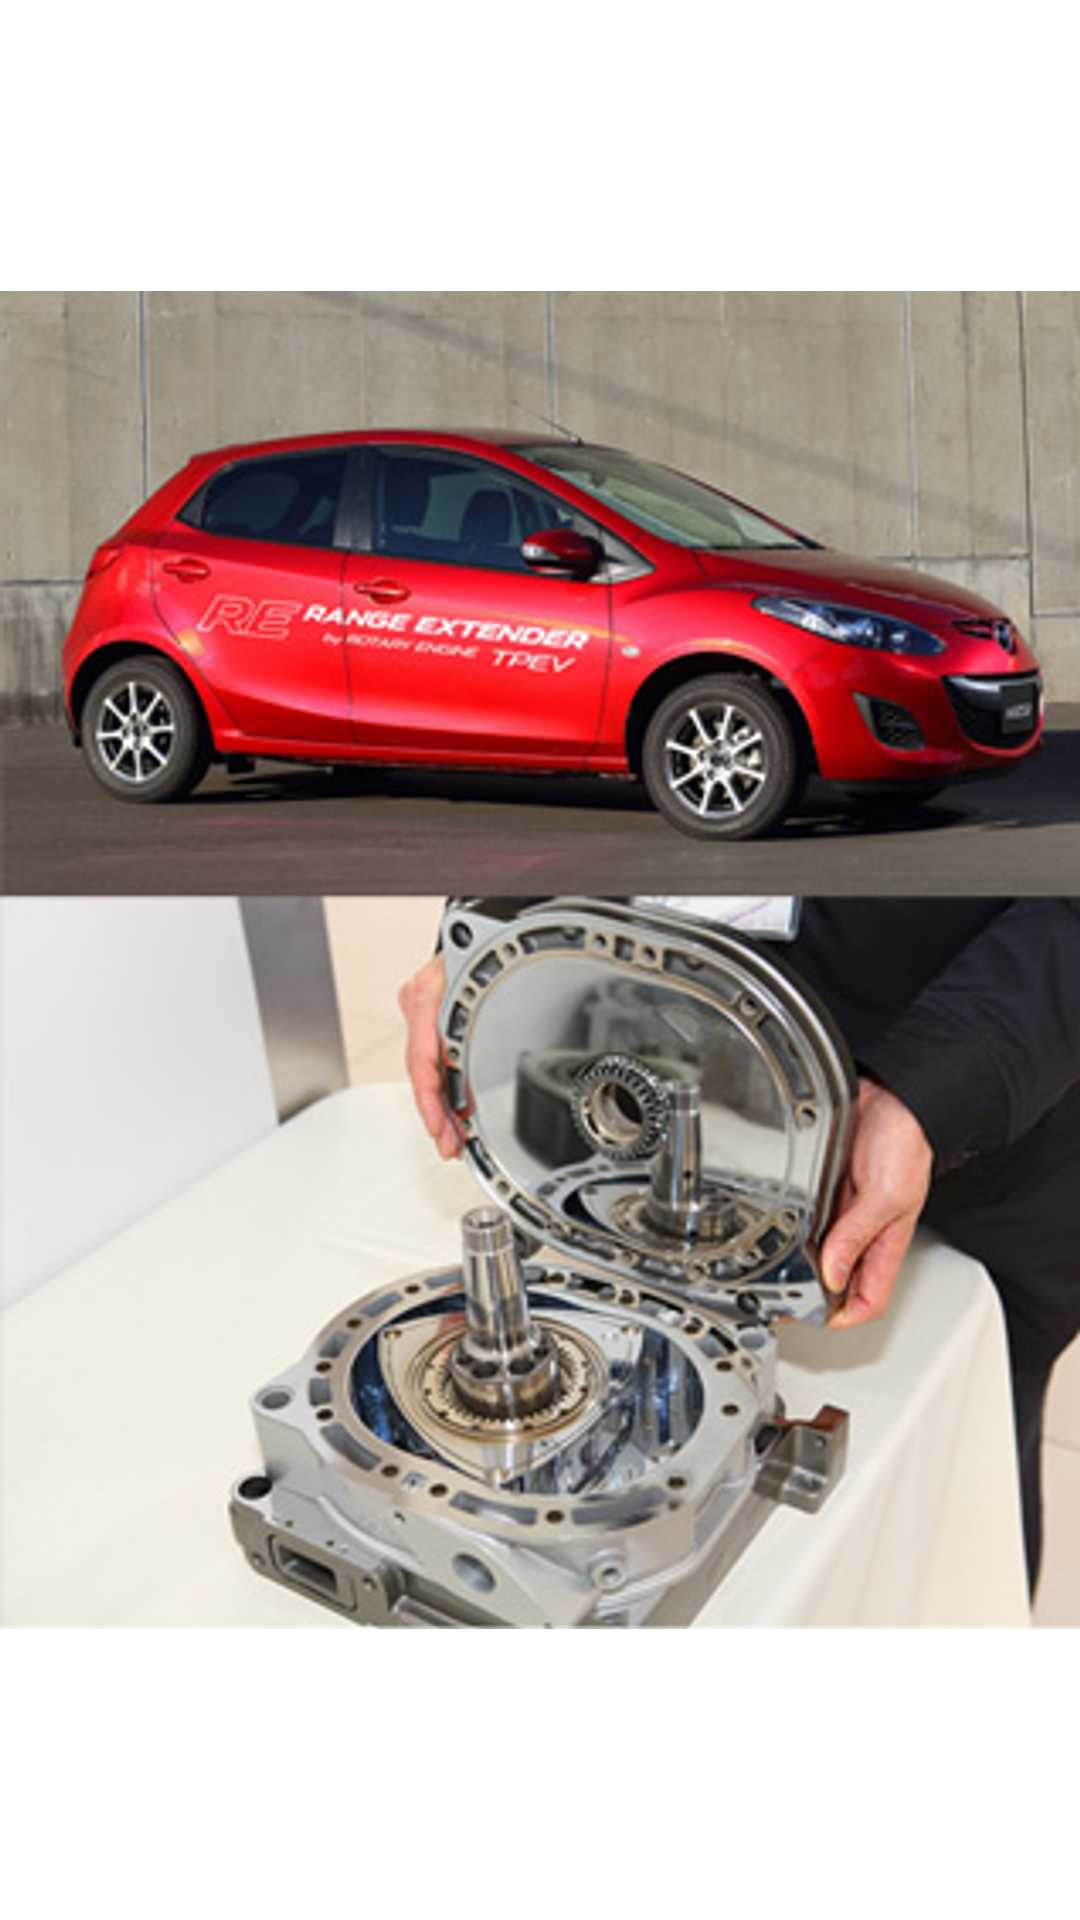 Mazda's Rotary Engine Might Get New Life As Toyota Range